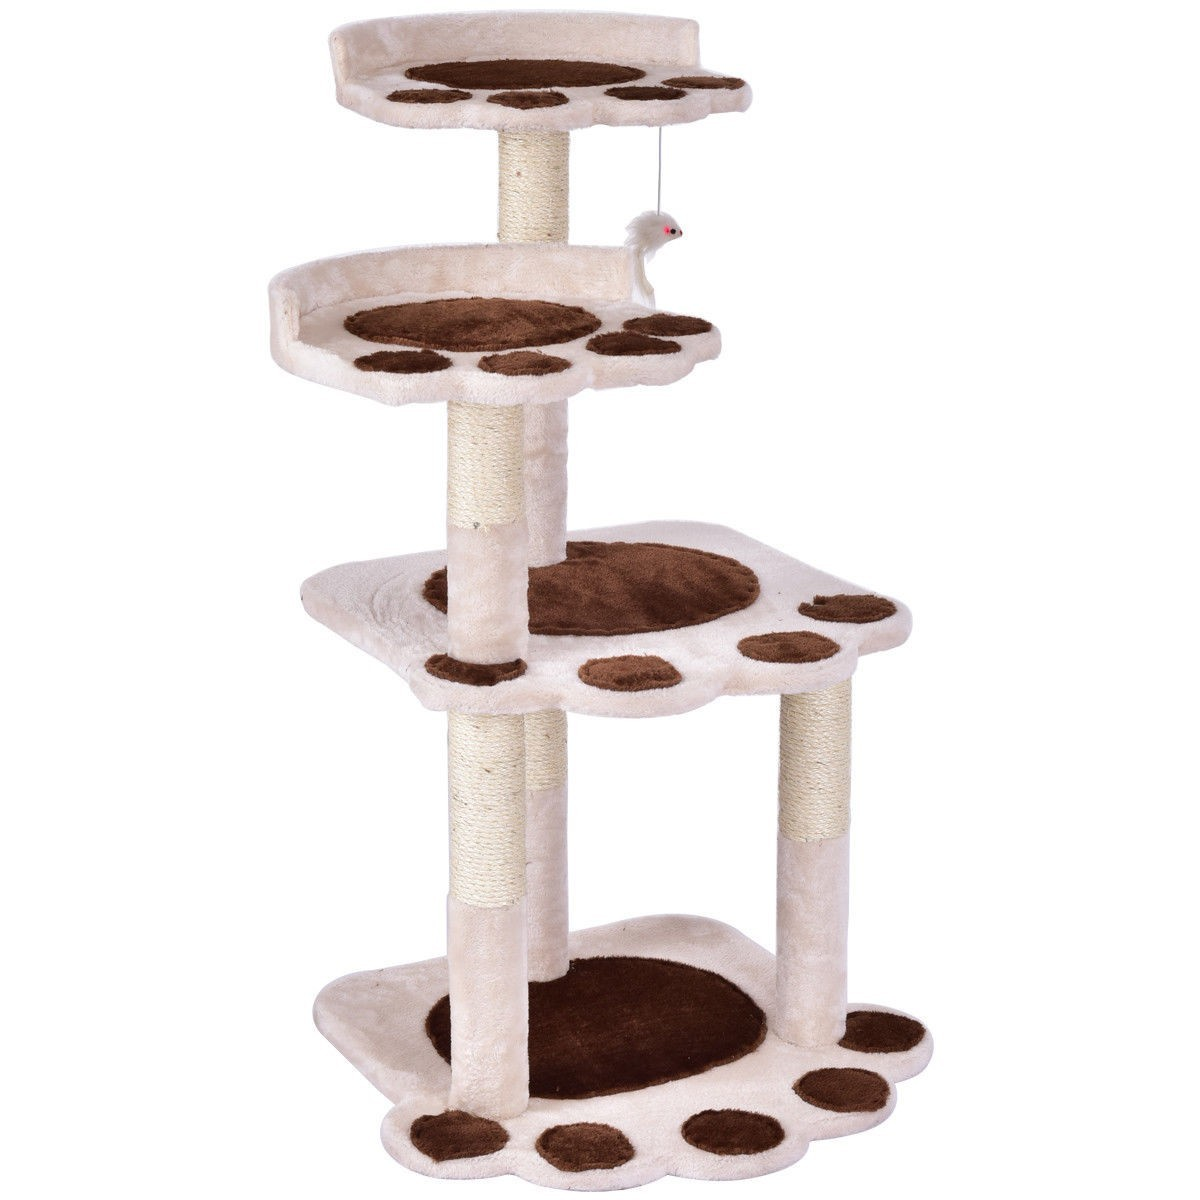 "42"" Cat Tree Kitten Pet Furniture Multi-level Climb Scratching Posts Paw Beige by"